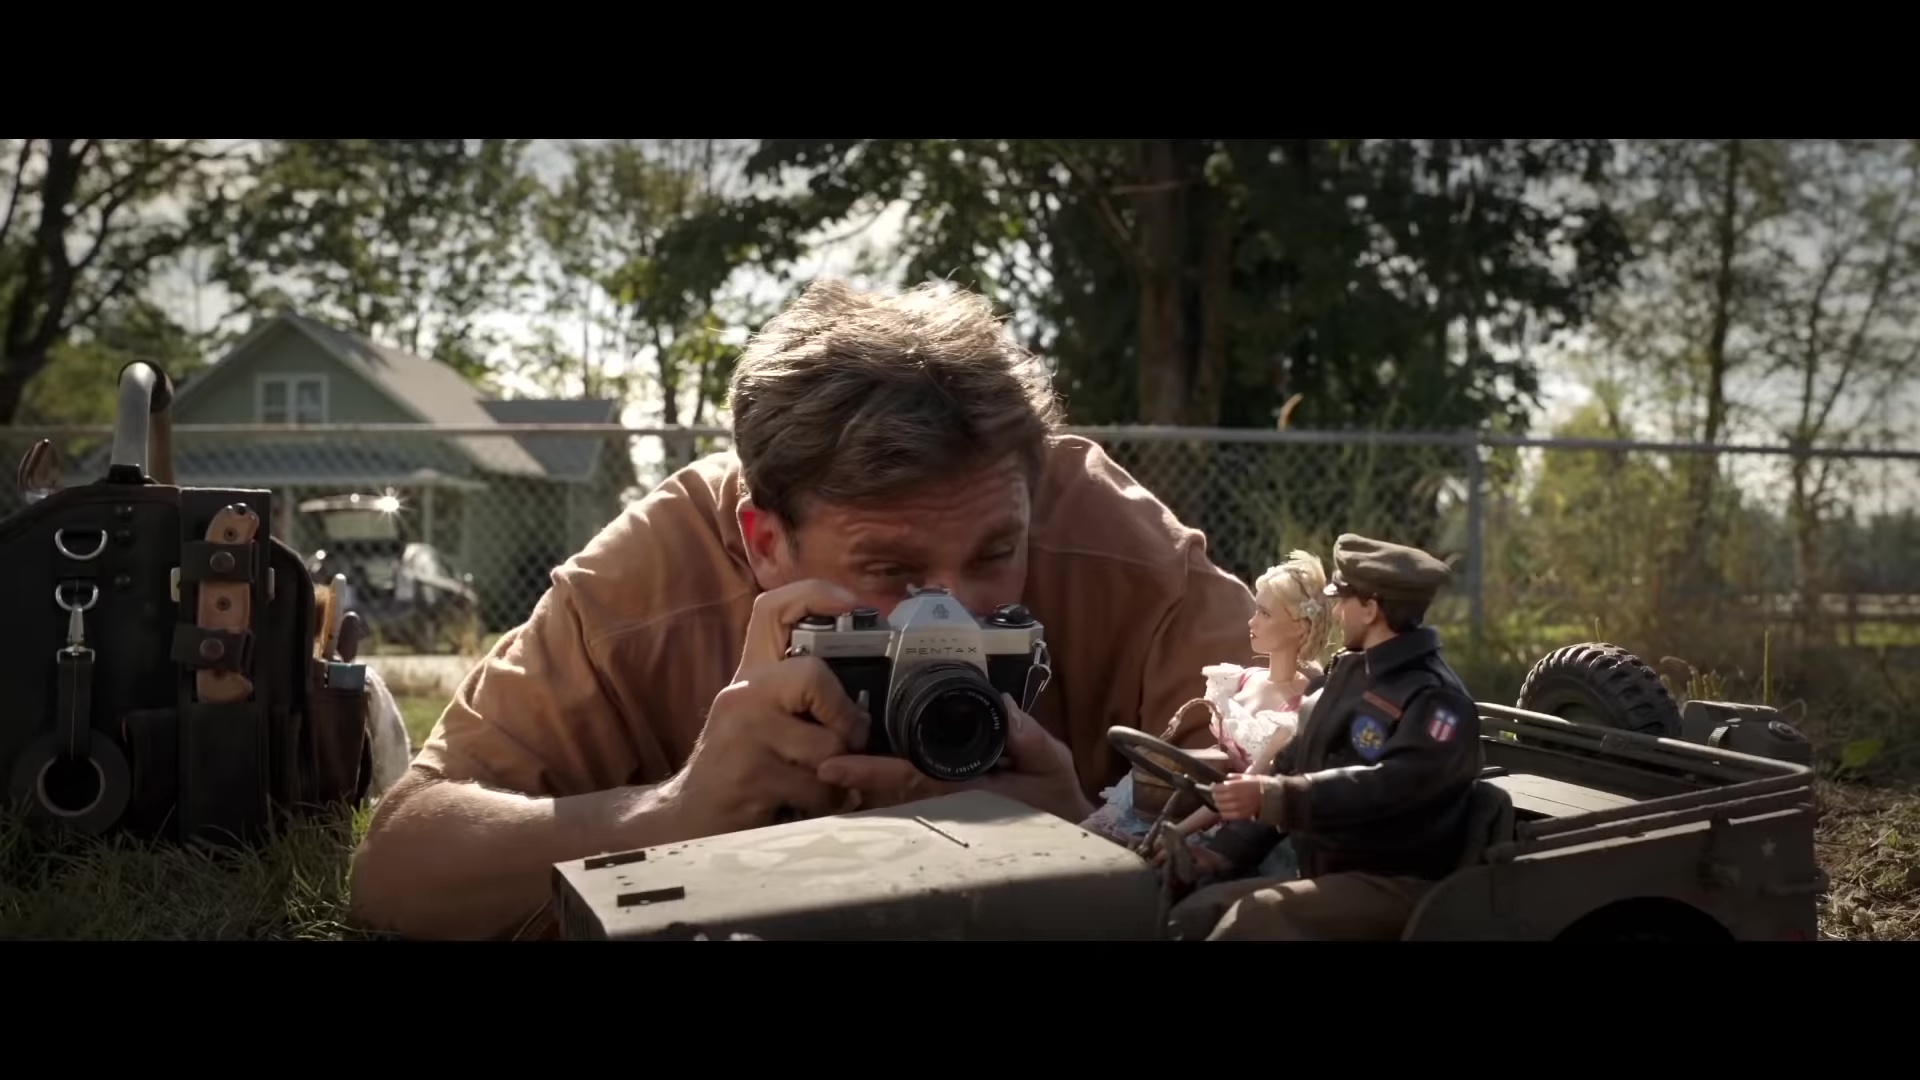 Pentax Camera Used by Steve Carell in Welcome to Marwen (2018)